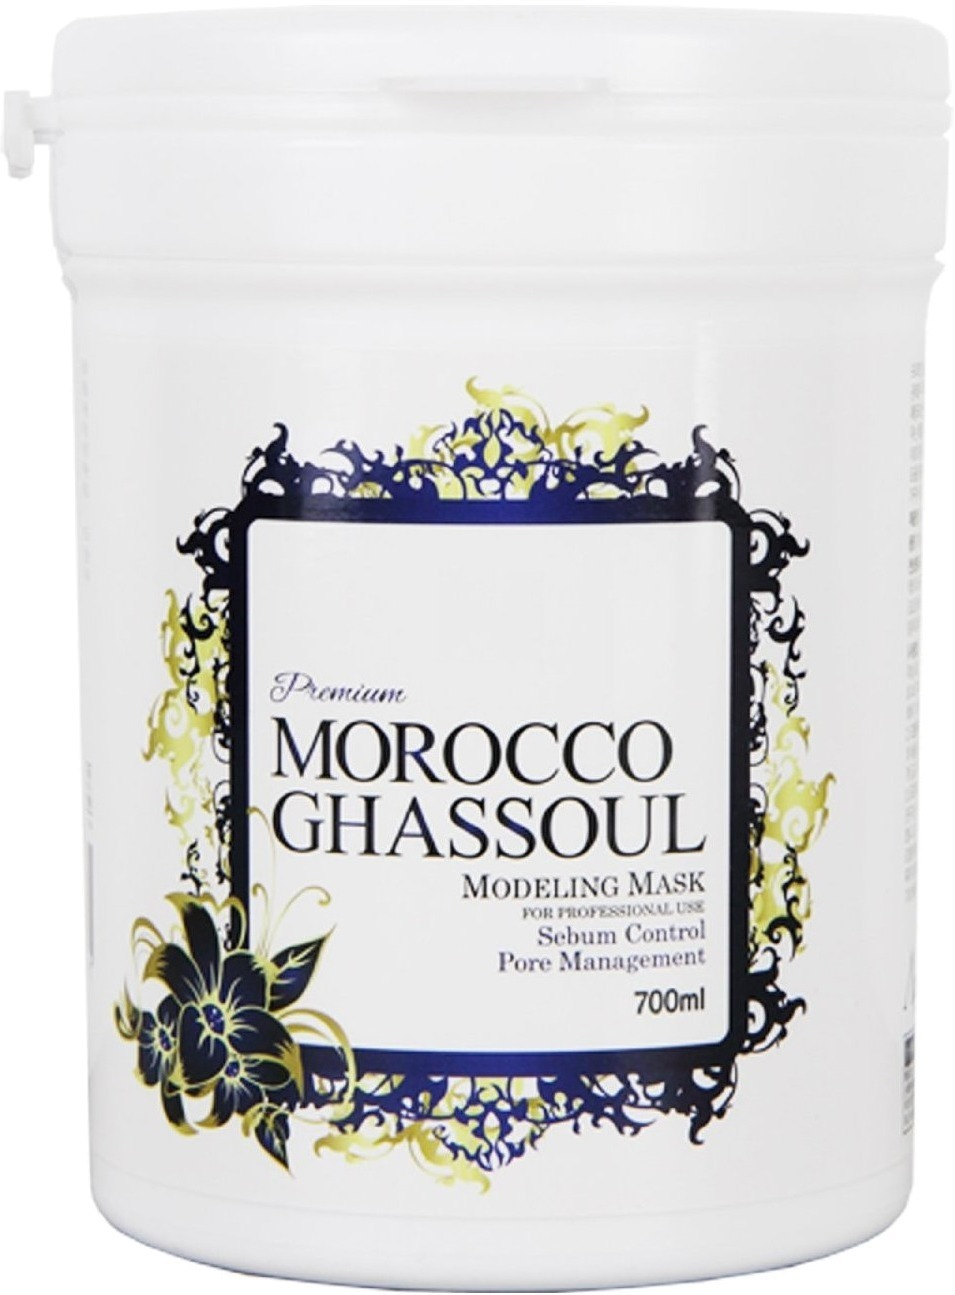 Anskin Morocco Ghassoul Modeling Mask  container